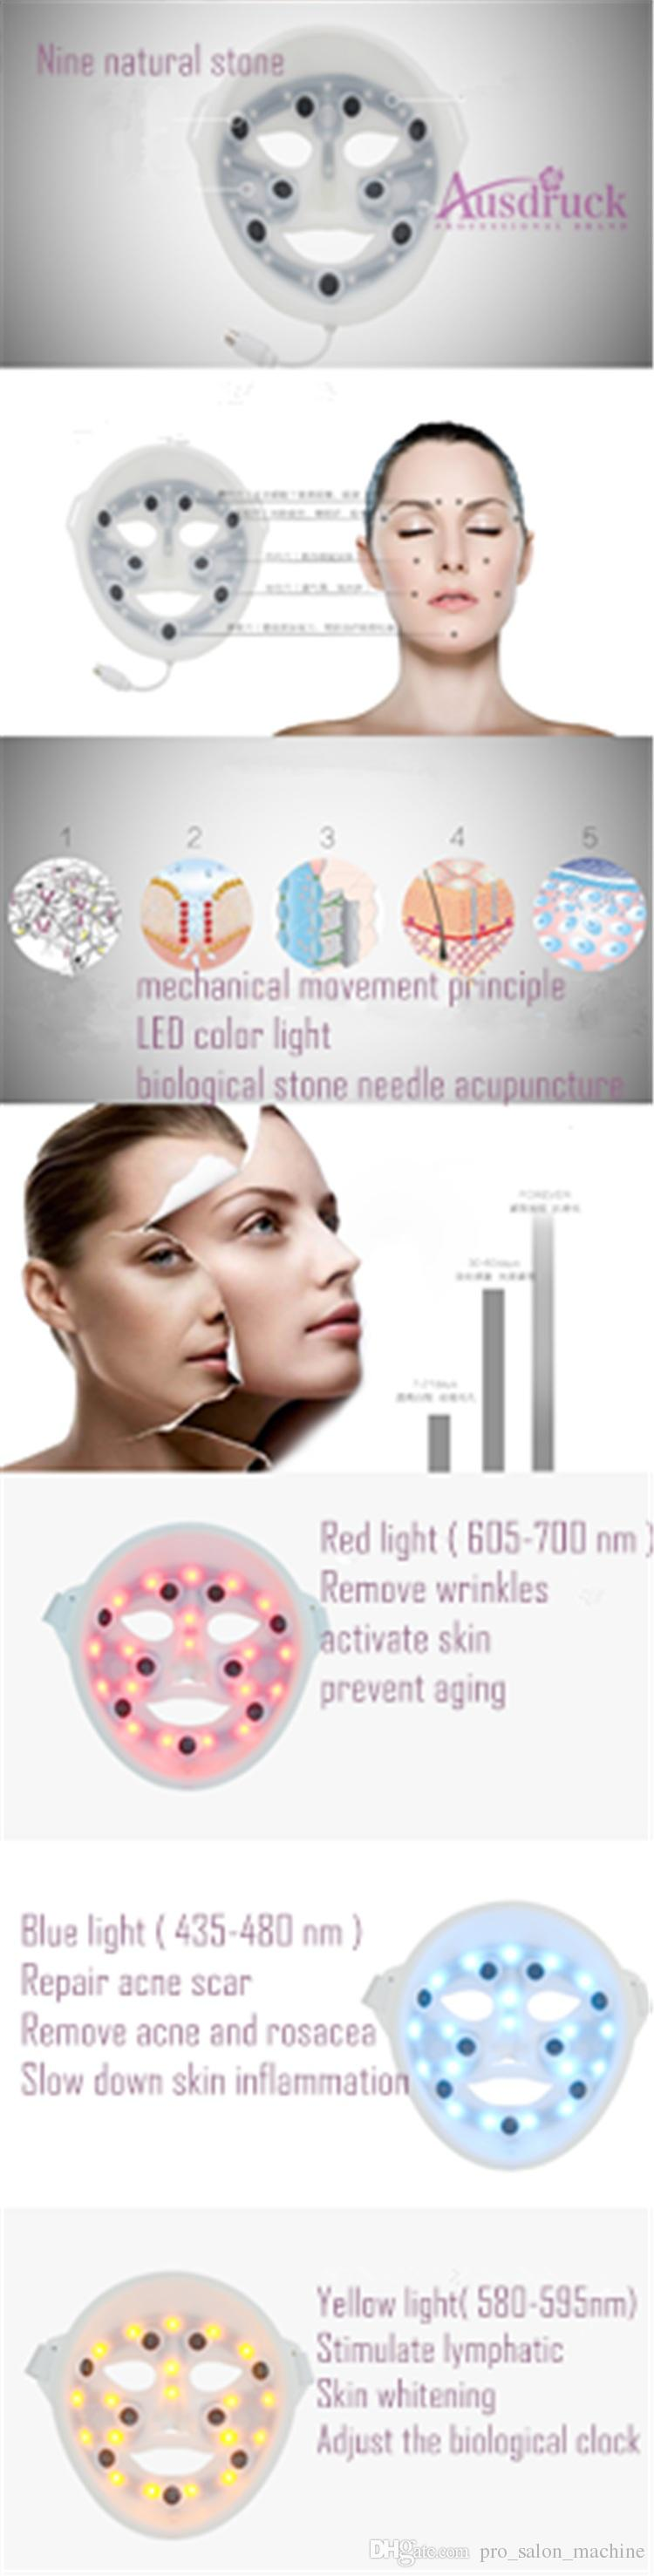 Red Blue Yellow PDT LED Light Anti Aging Acne Wrinkle Remover LED Facial Mask PDT Machine for Facial Care Photon Skin Rejuvenation